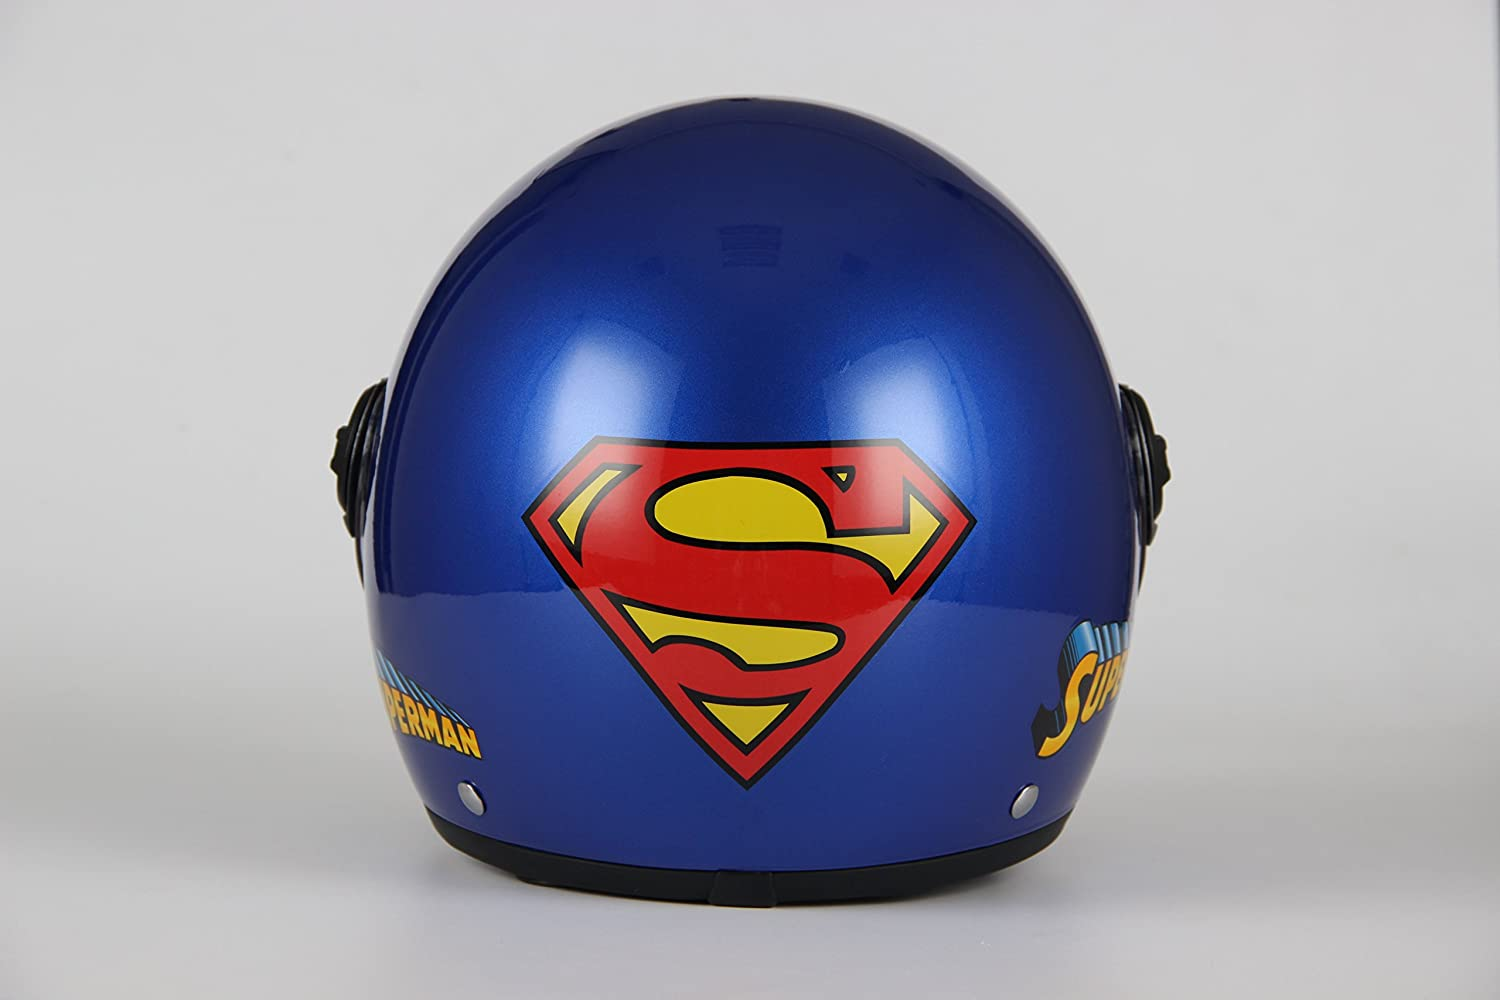 Amazon.es: BHR 34054 Casco 713 Superman niño azul, talla YM (51/52), color azul, talla YM